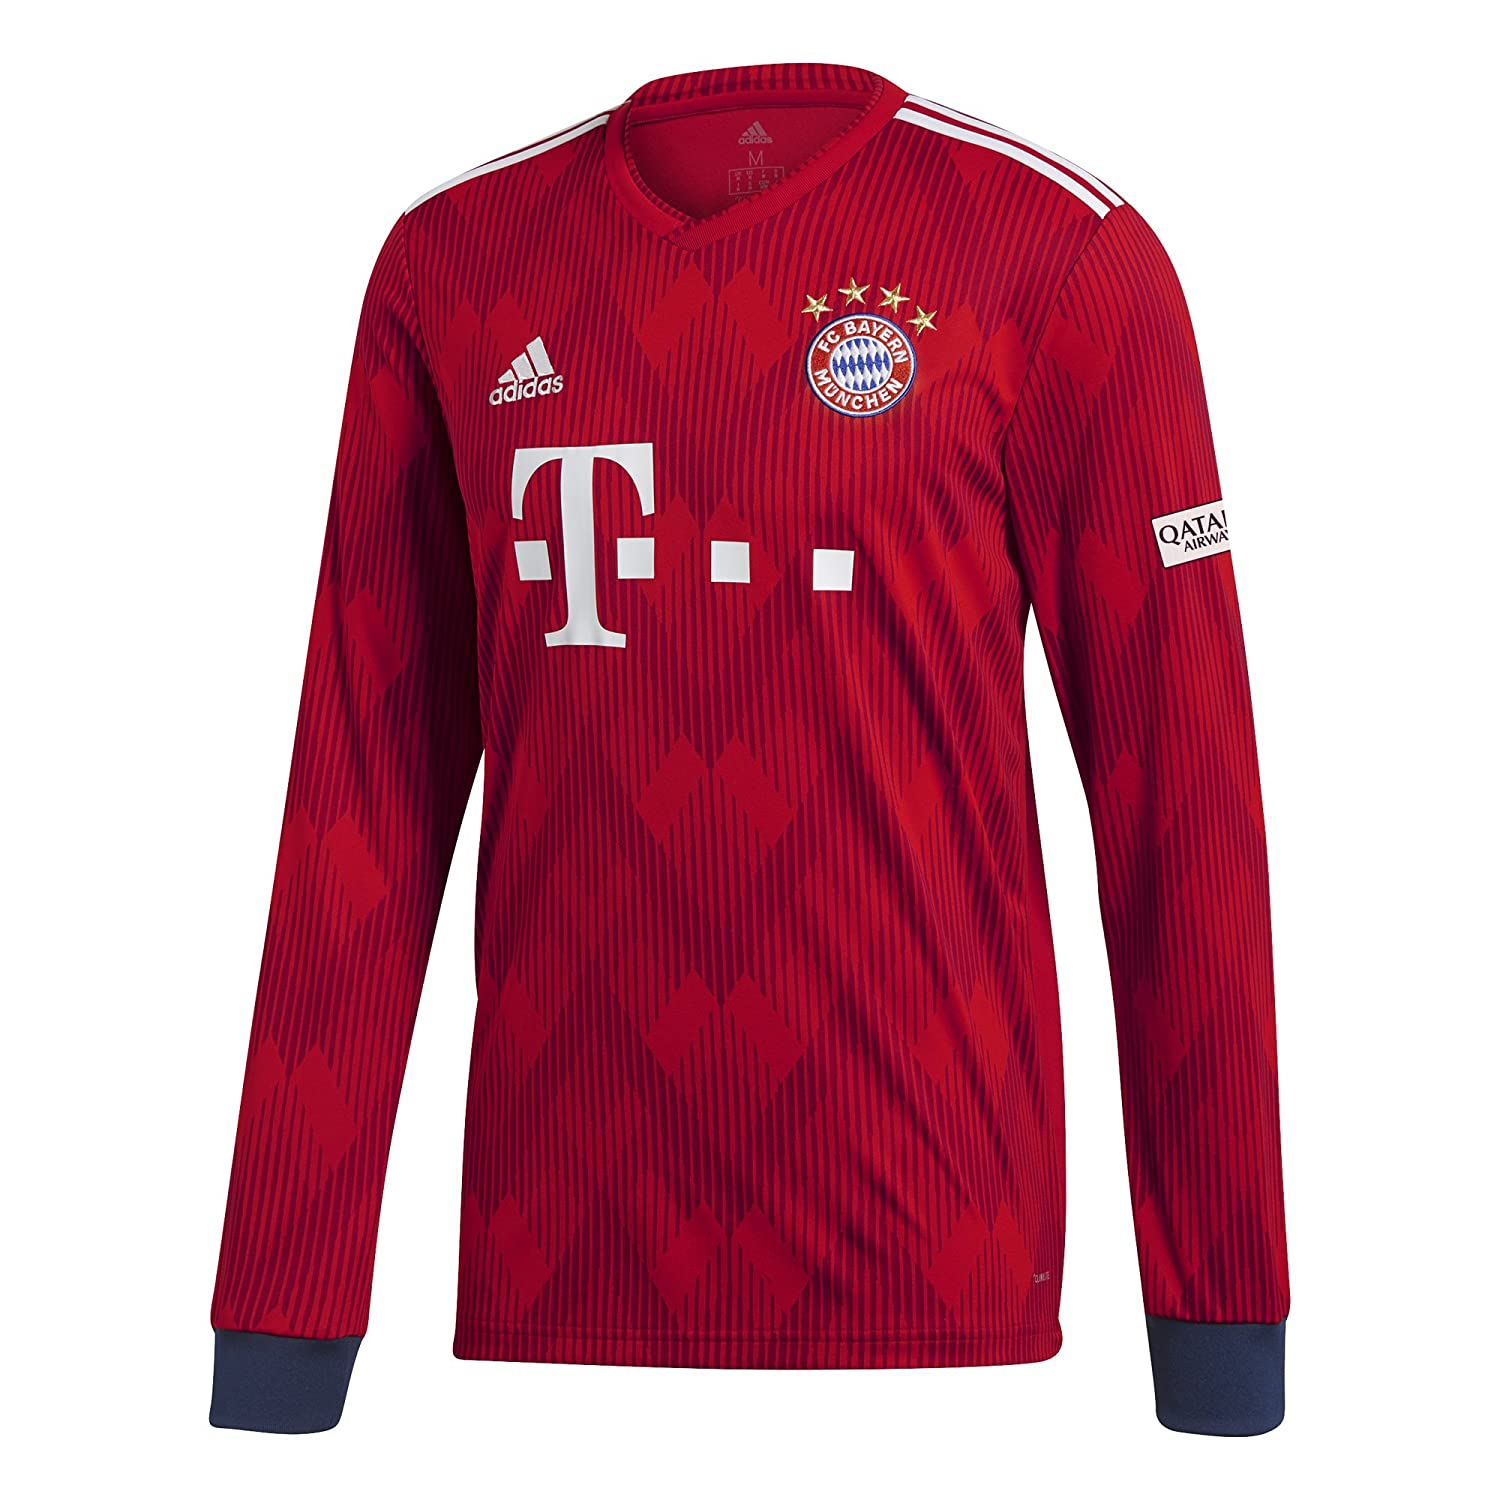 meet 0306a cacc2 adidas 2018-2019 Bayern Munich Home Long Sleeve Football Soccer T-Shirt  Jersey